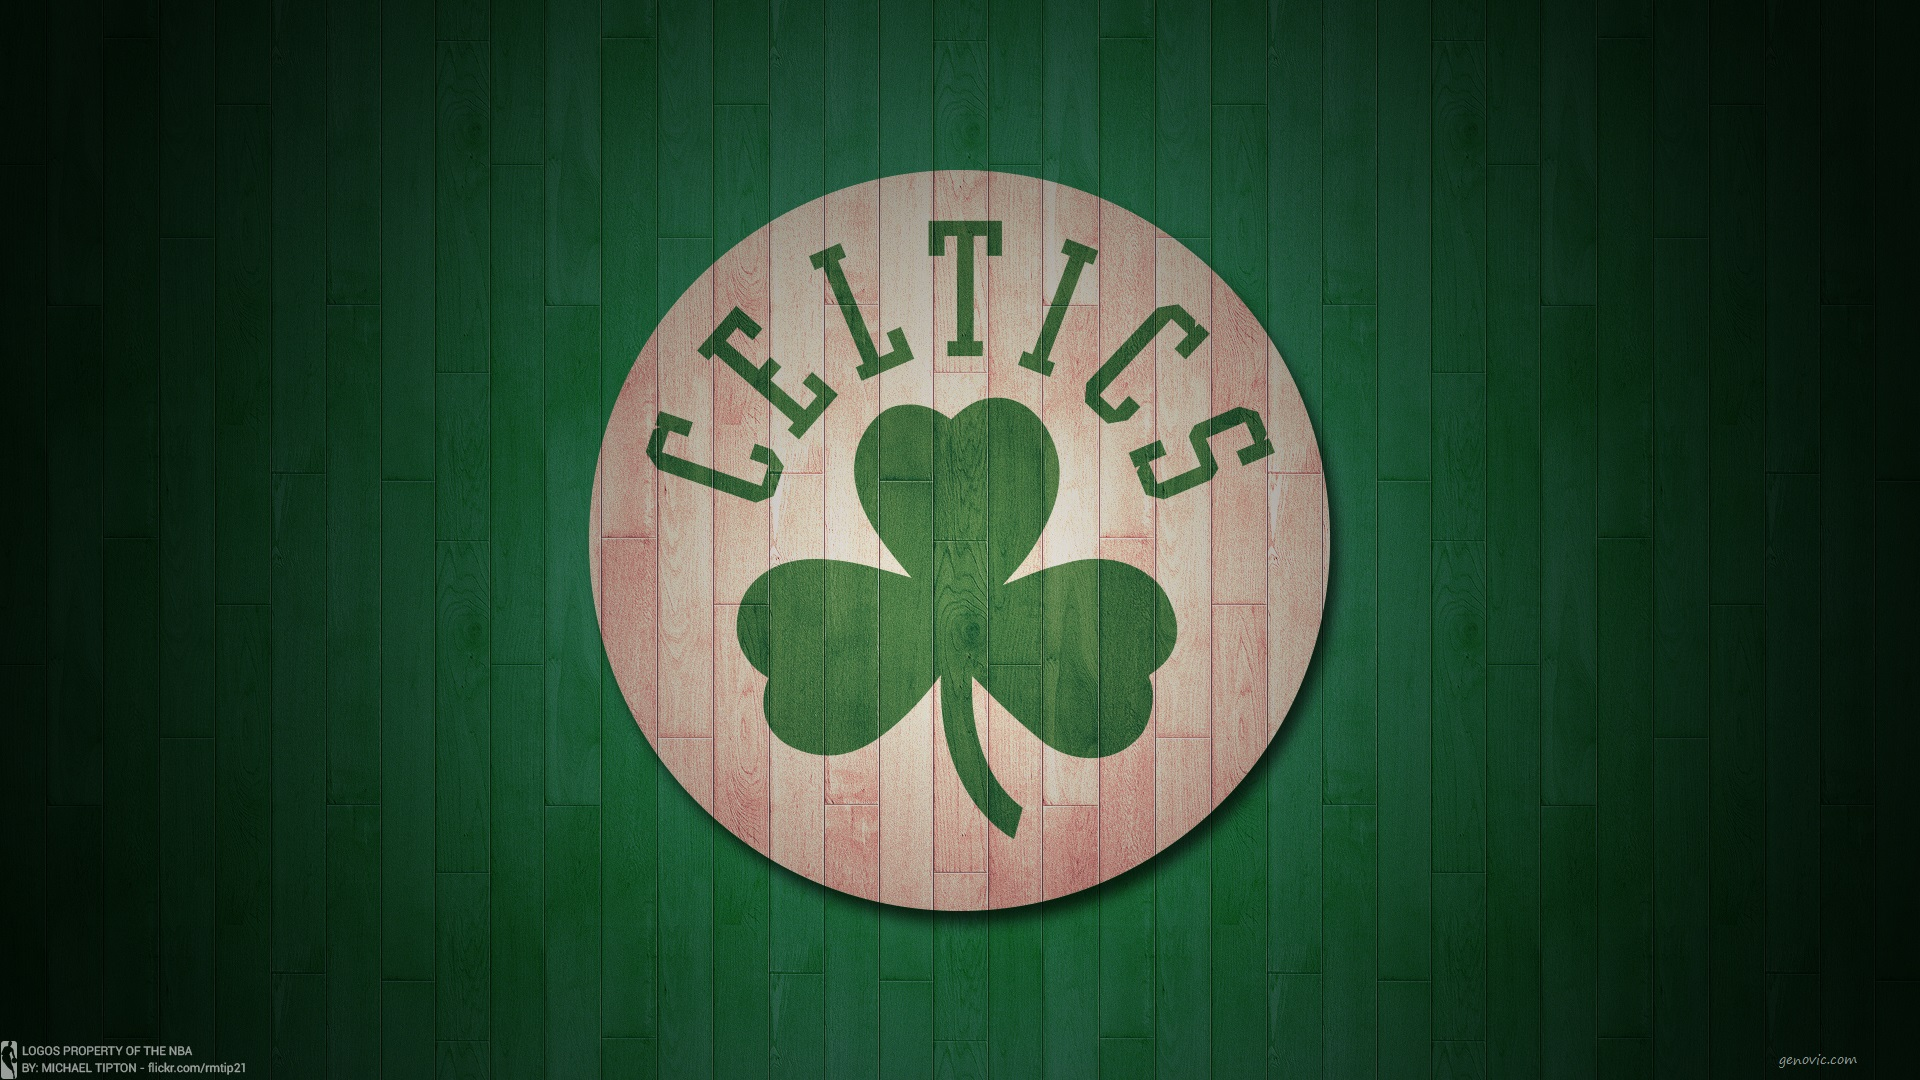 Boston Celtics Wallpaper HD